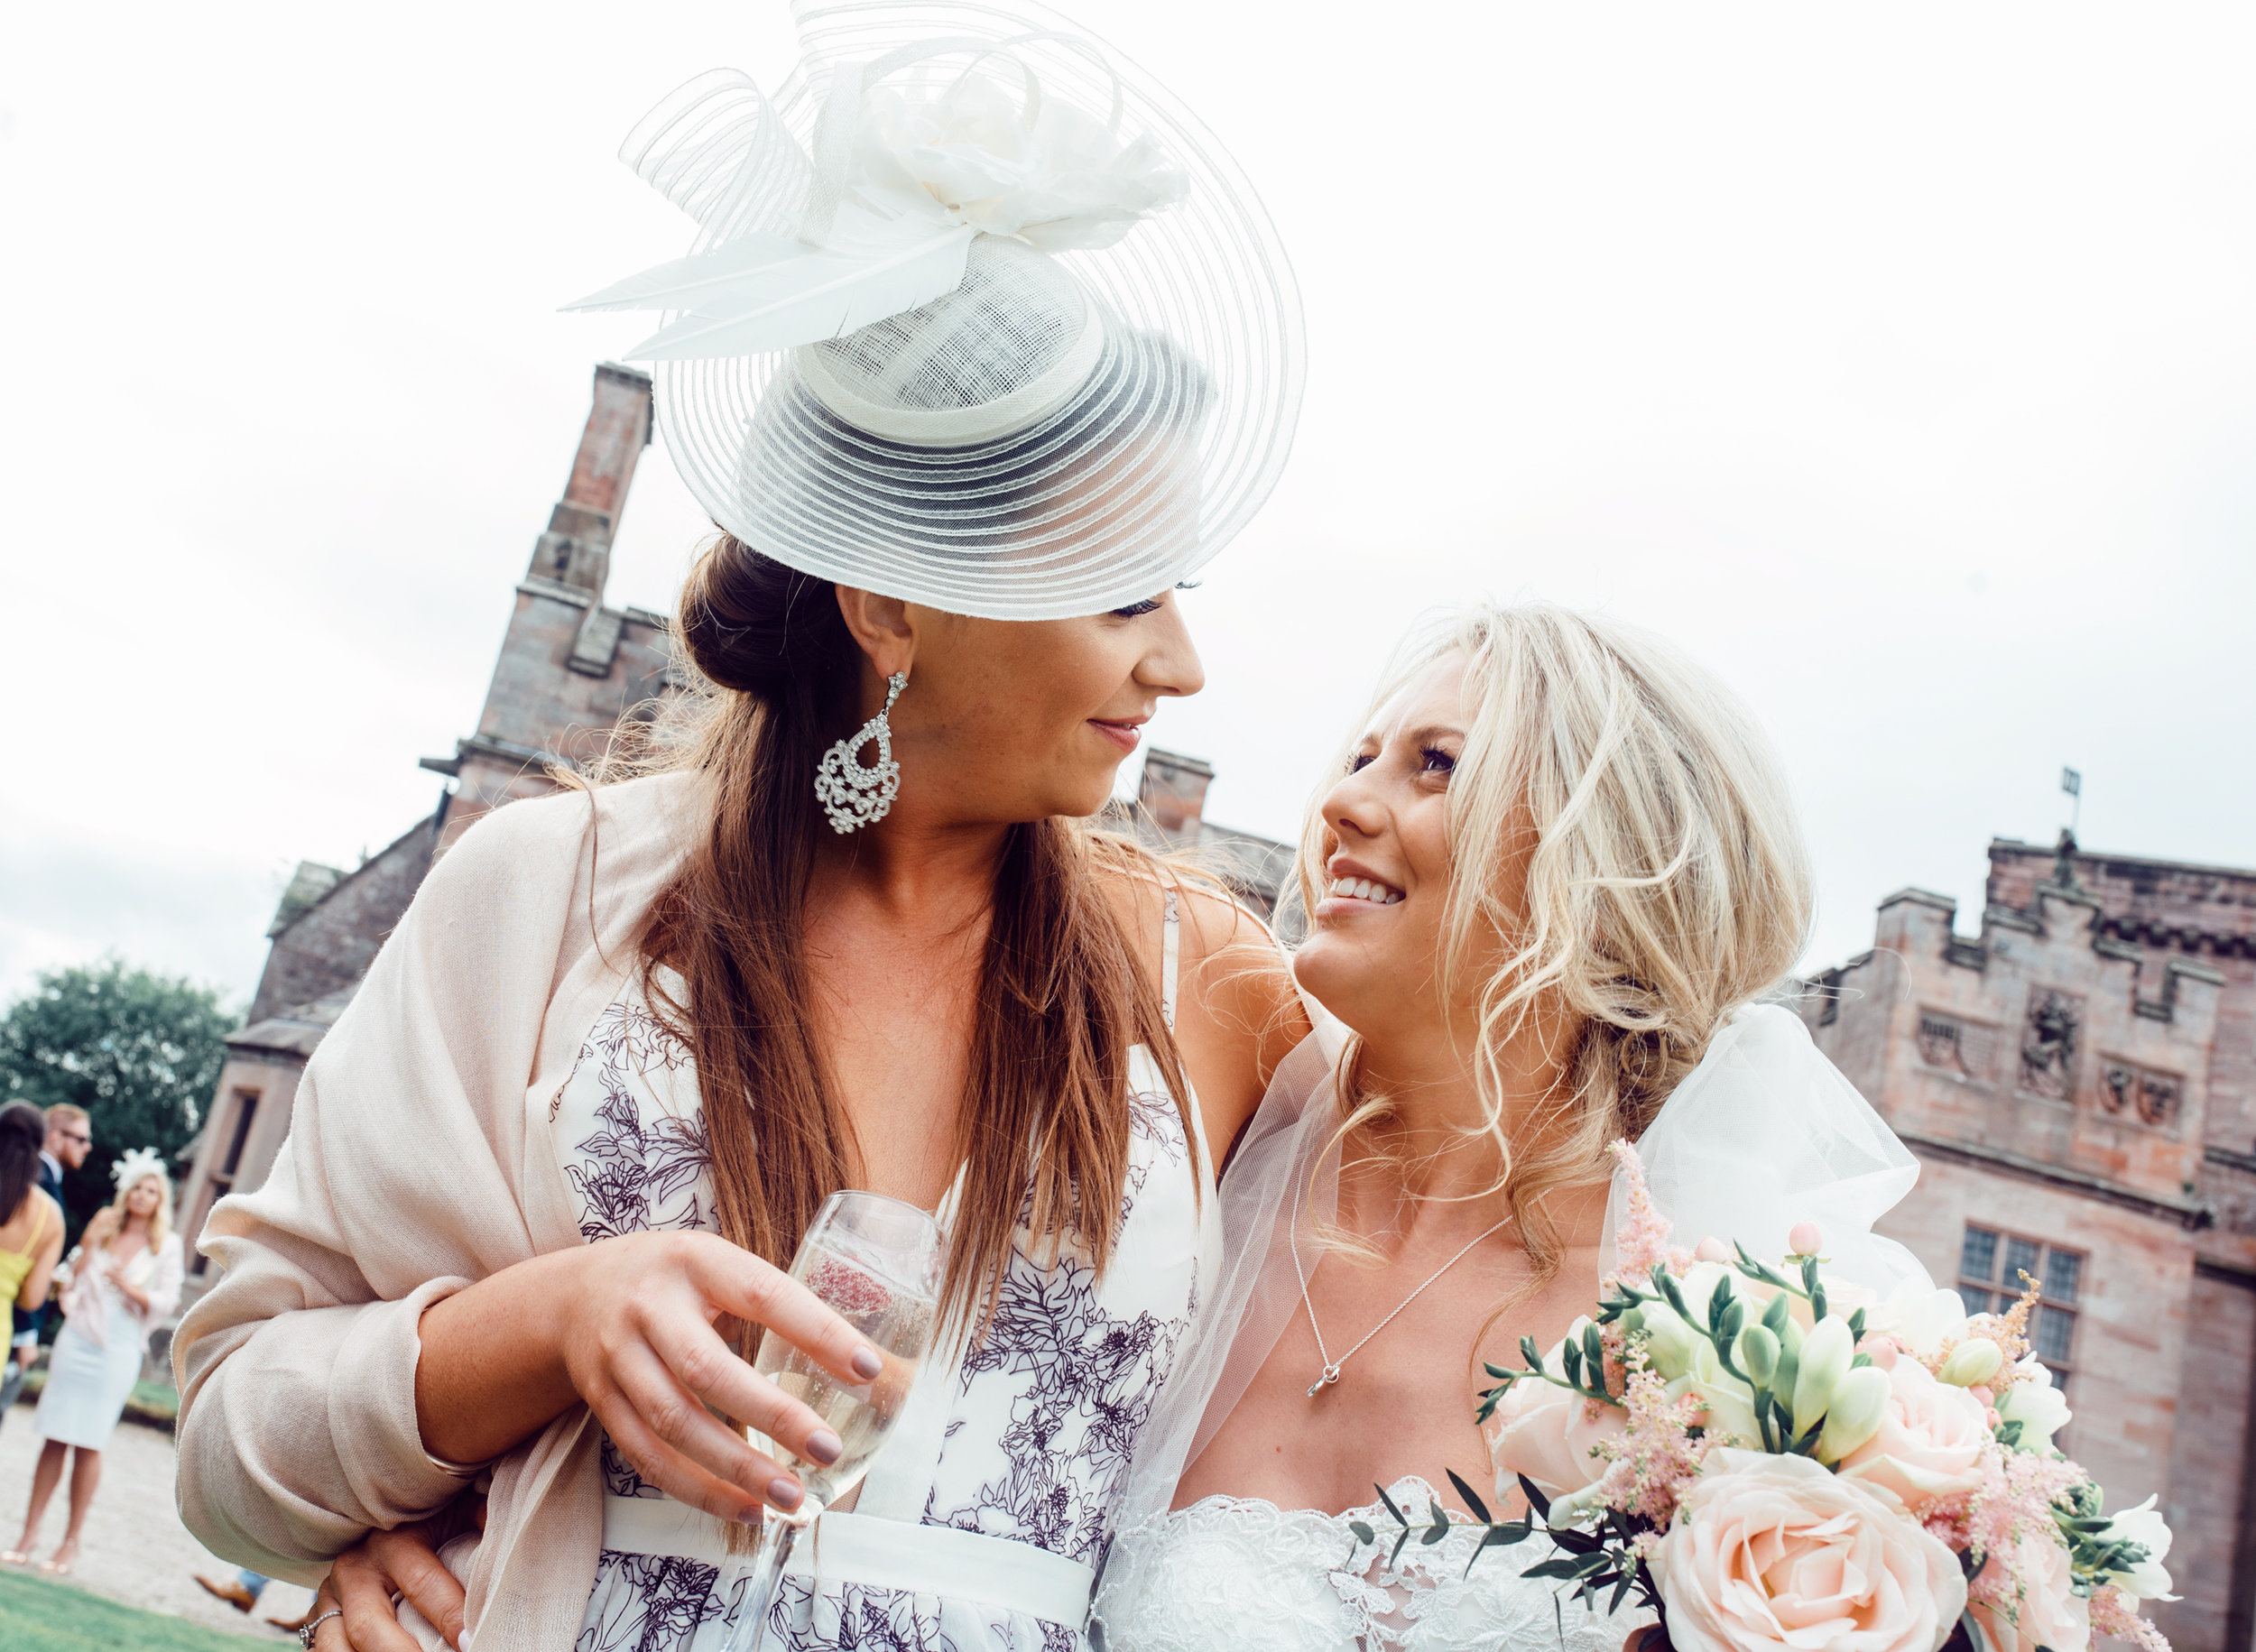 The bride having a laugh with one of her friends